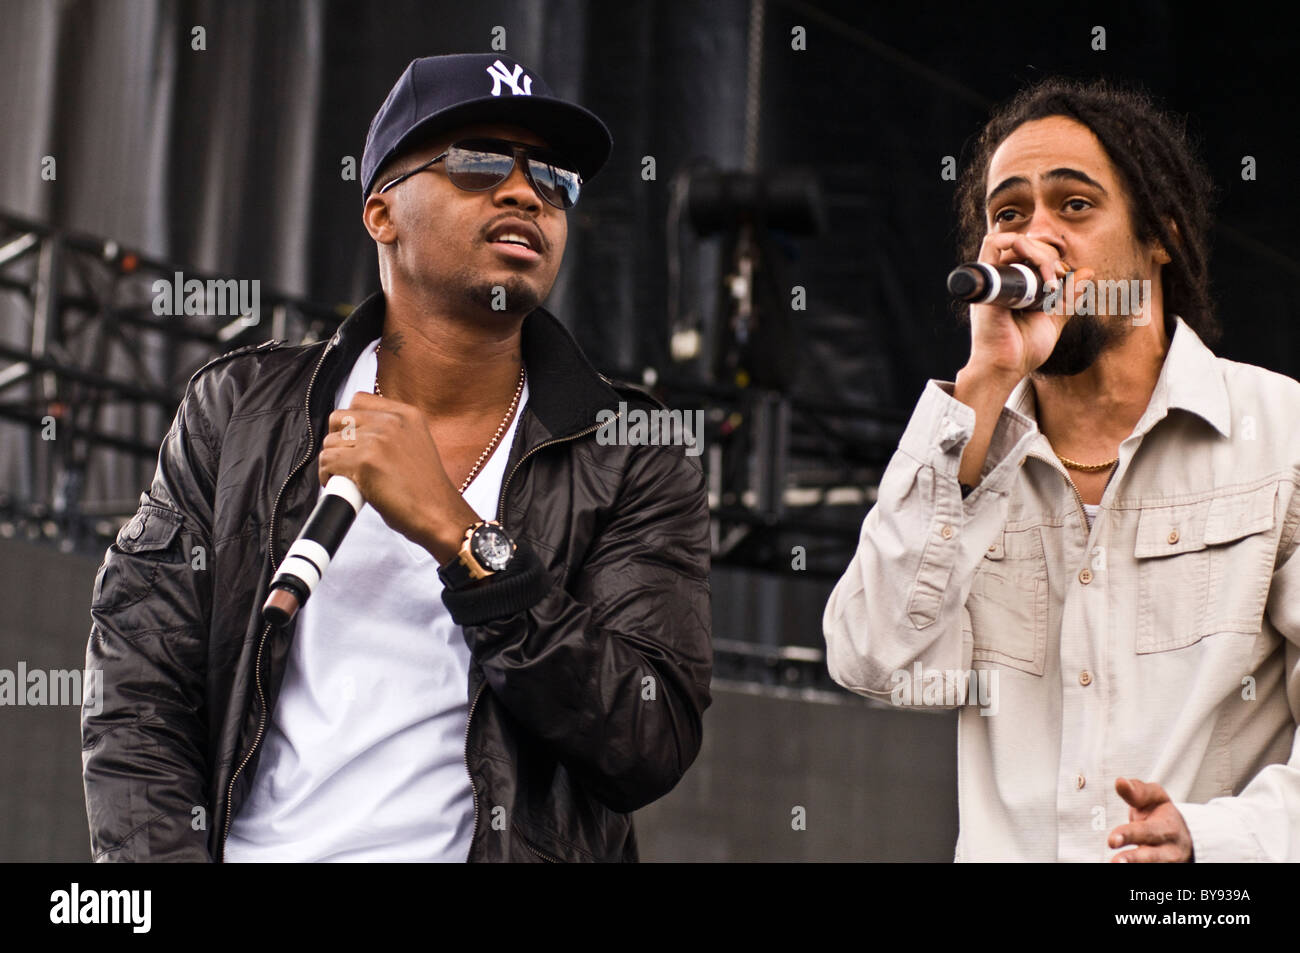 Nas and Damien 'Jr. Gong' Marley preform live at the Mile High Music Festival in Colorado, 2010 - Stock Image